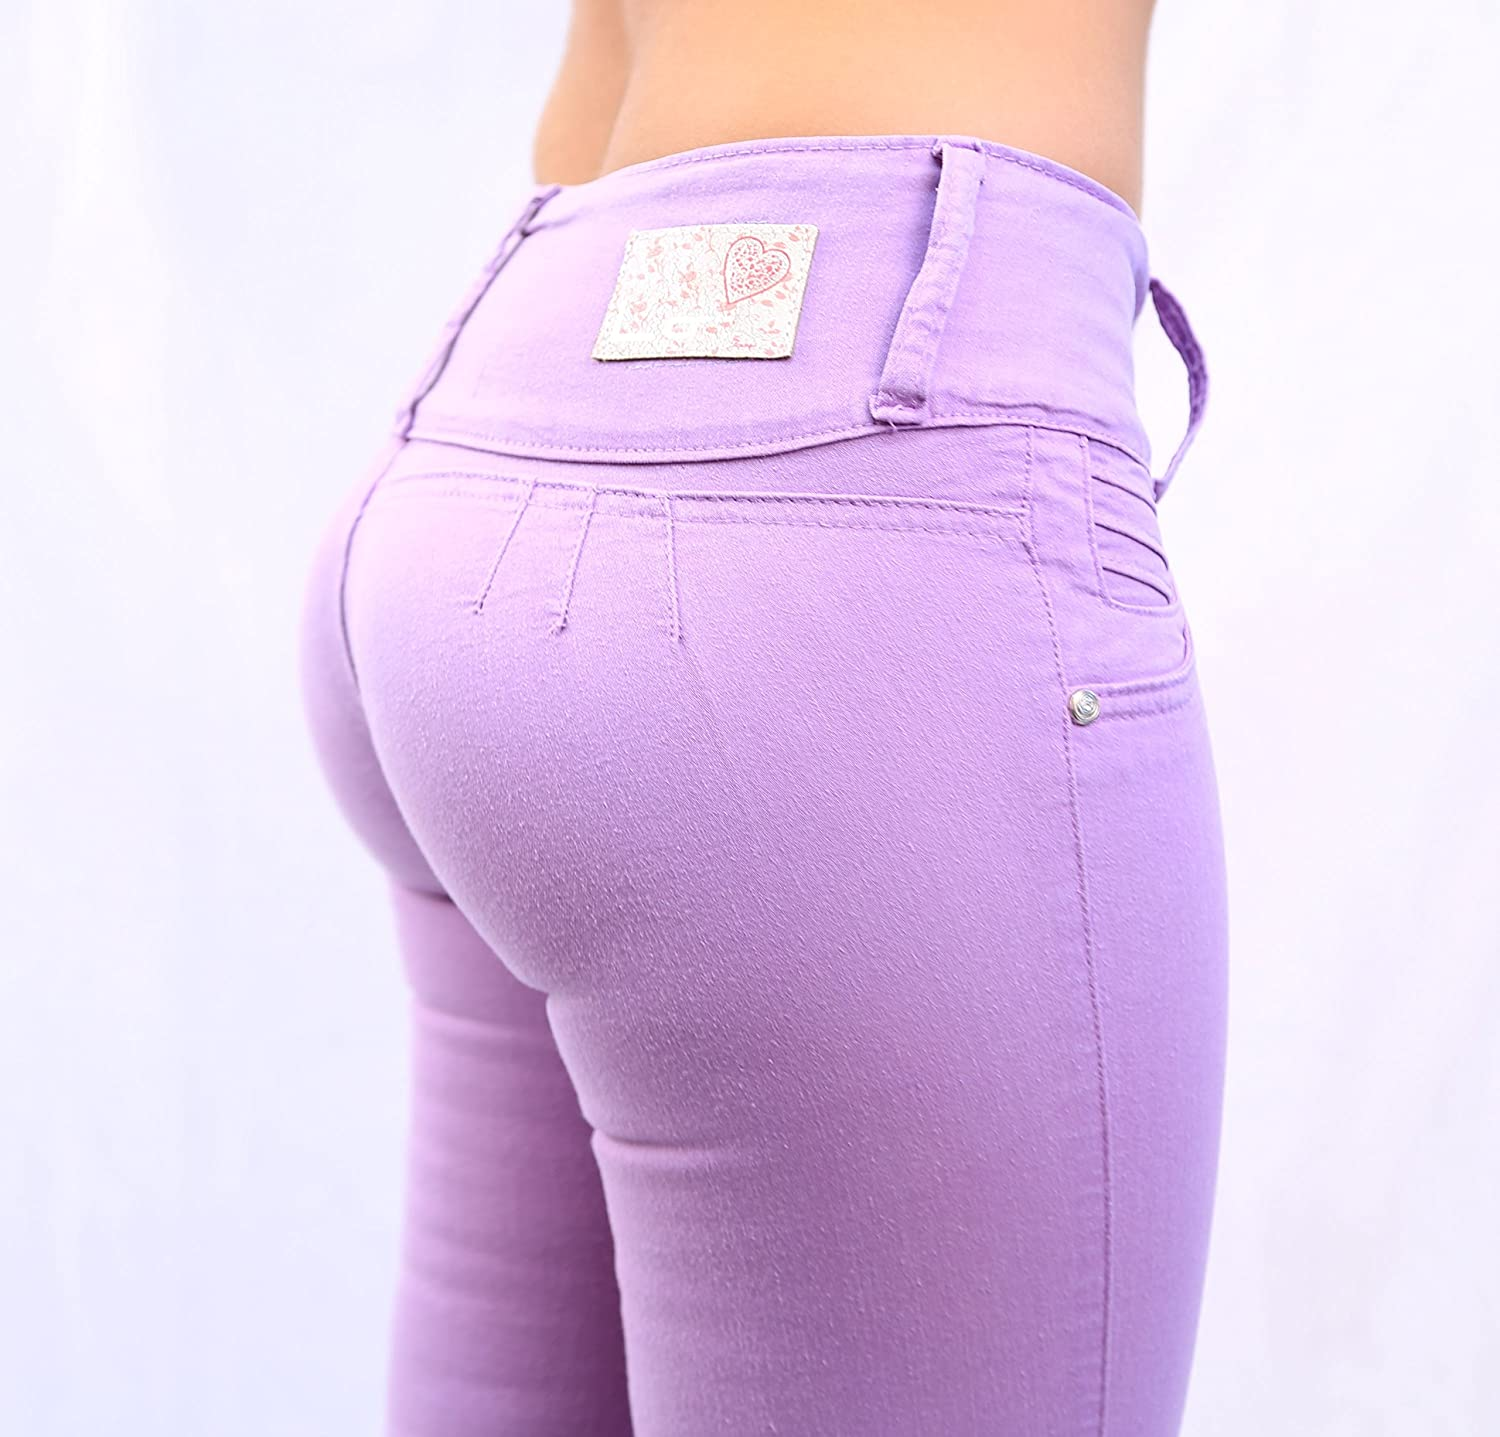 LOI Jeans Colombianos - Colombian Butt Lifting Jeans - Authentic Colombian Apparel